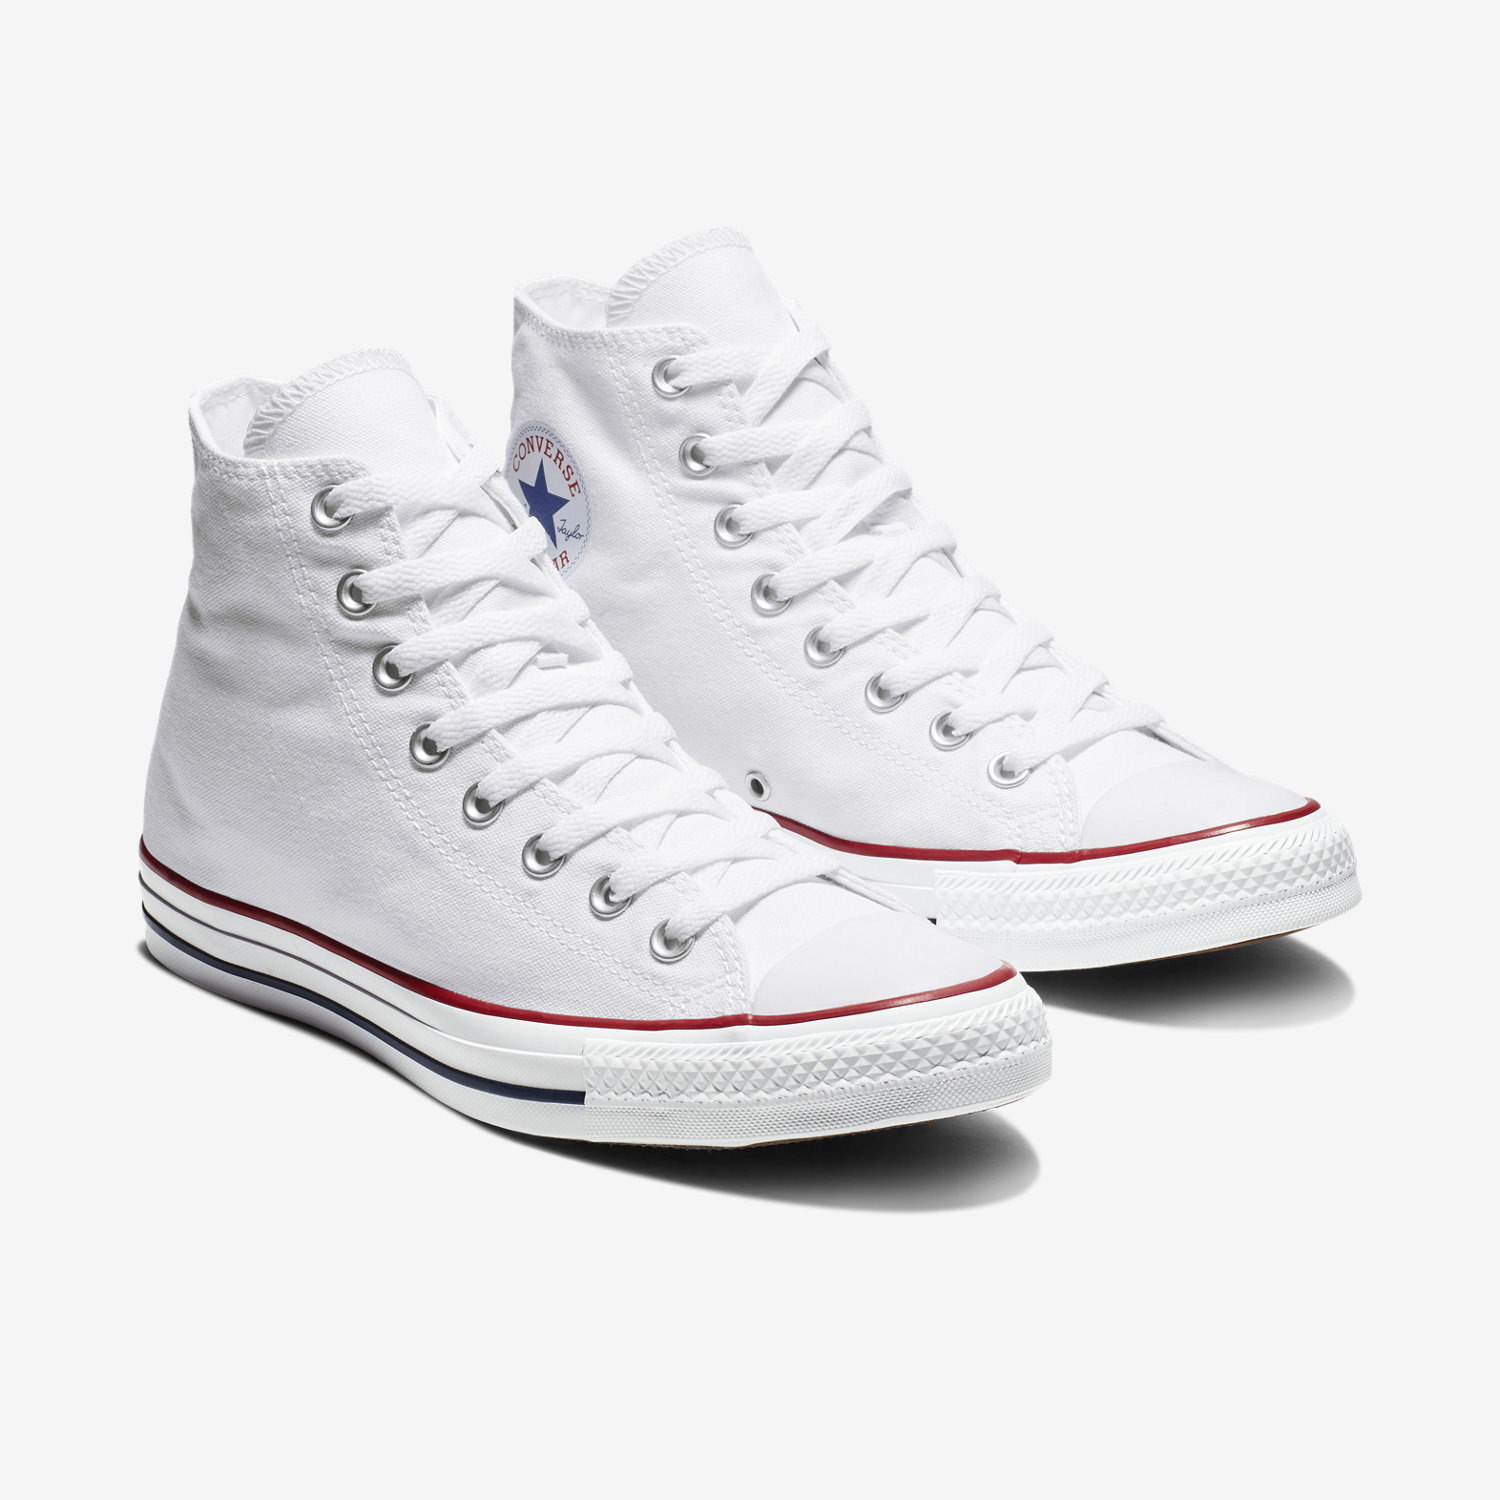 Converse Chuck Taylor All Star sneakers nXEvtW